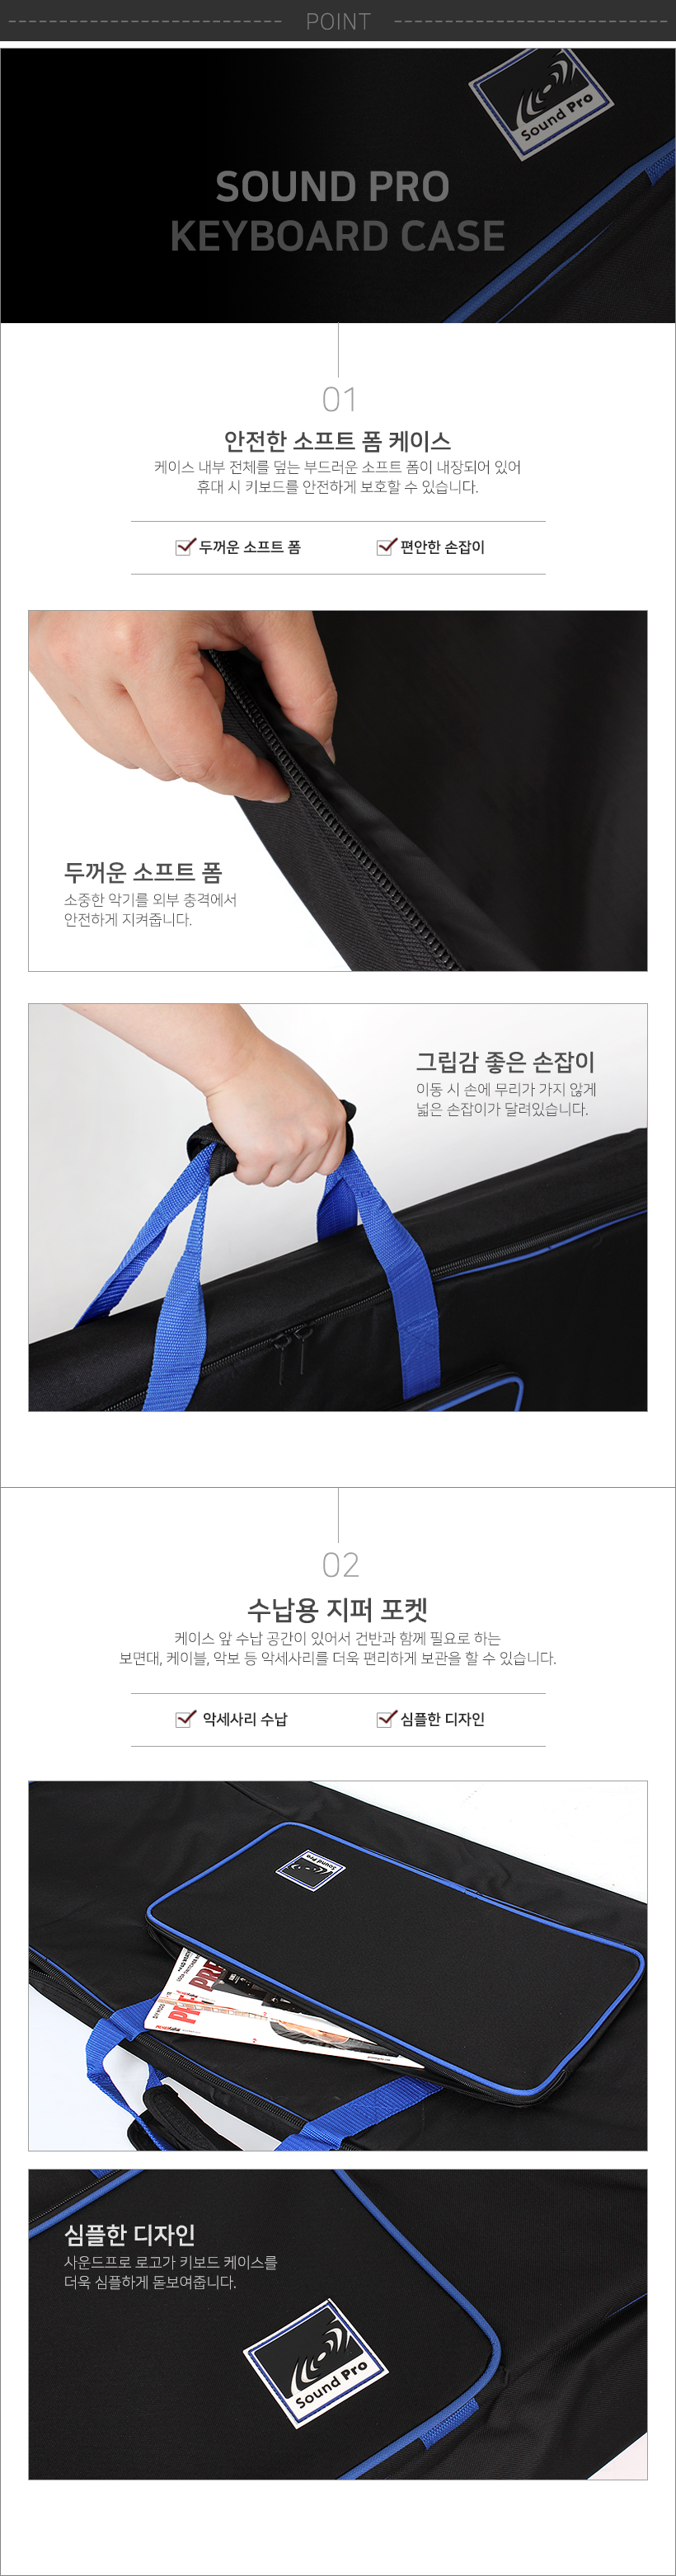 Keyboardcase 디테일